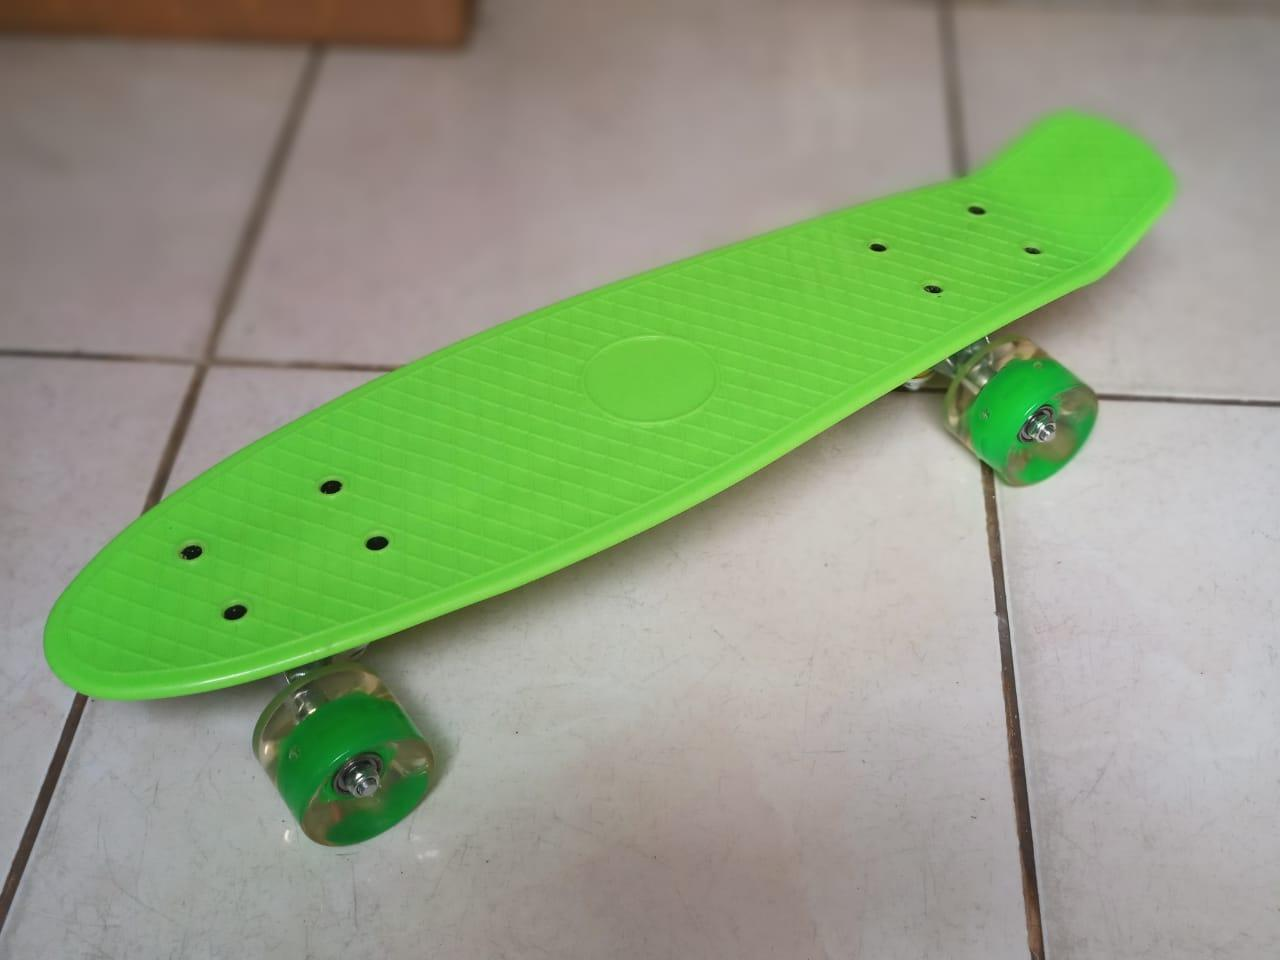 High Quality Skateboard with LED Wheels a187c1c5c8